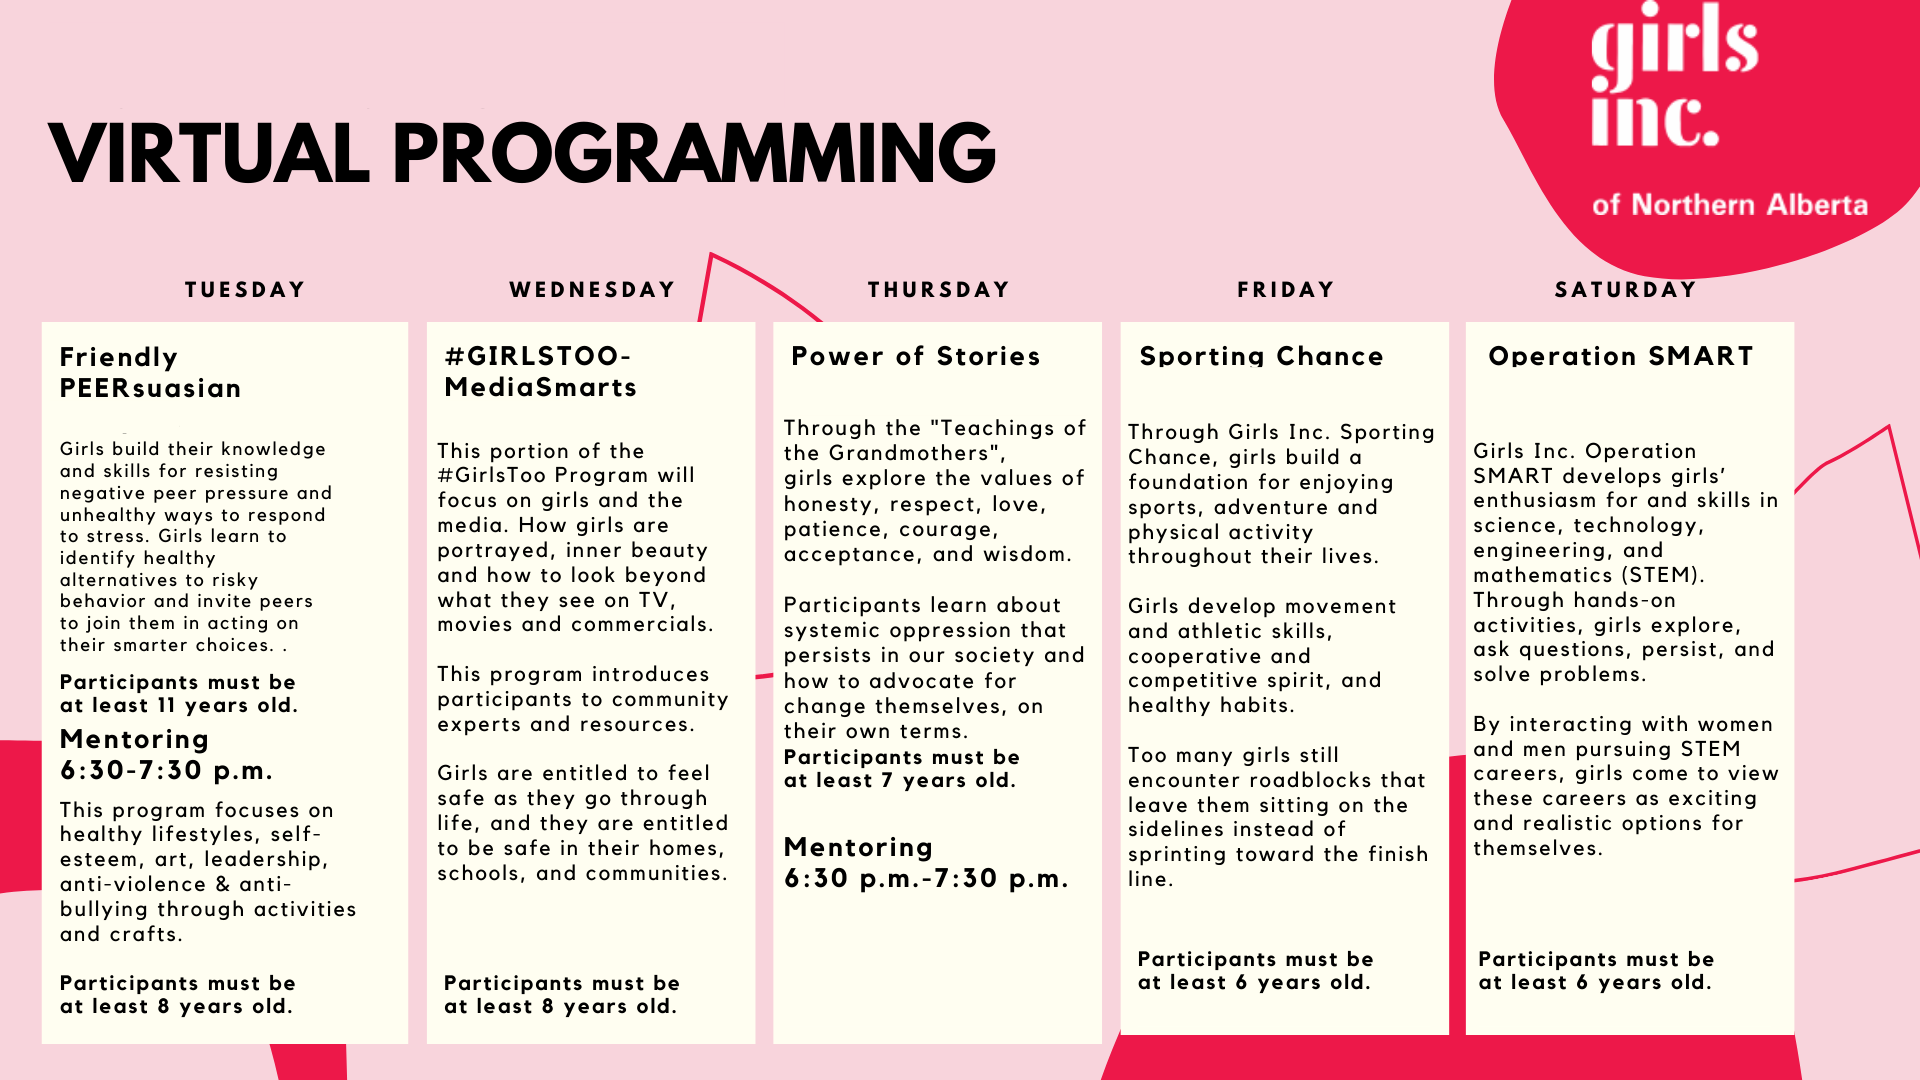 Girls Inc of Northern Alberta Online Programming